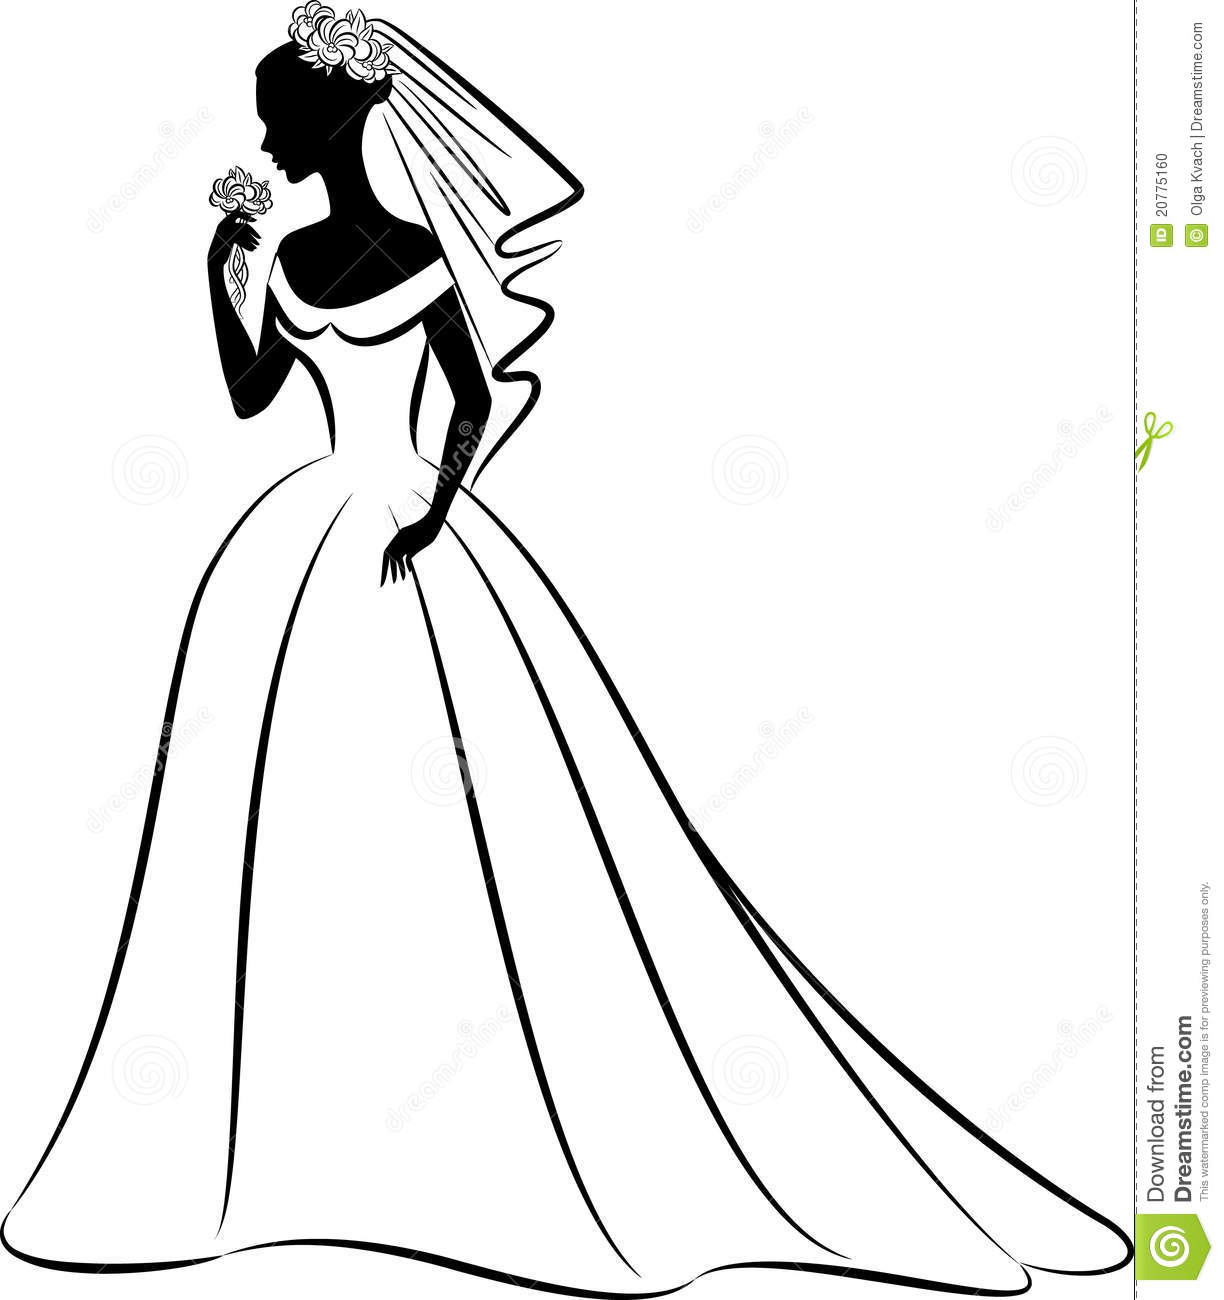 wedding gown clipart free - photo #10